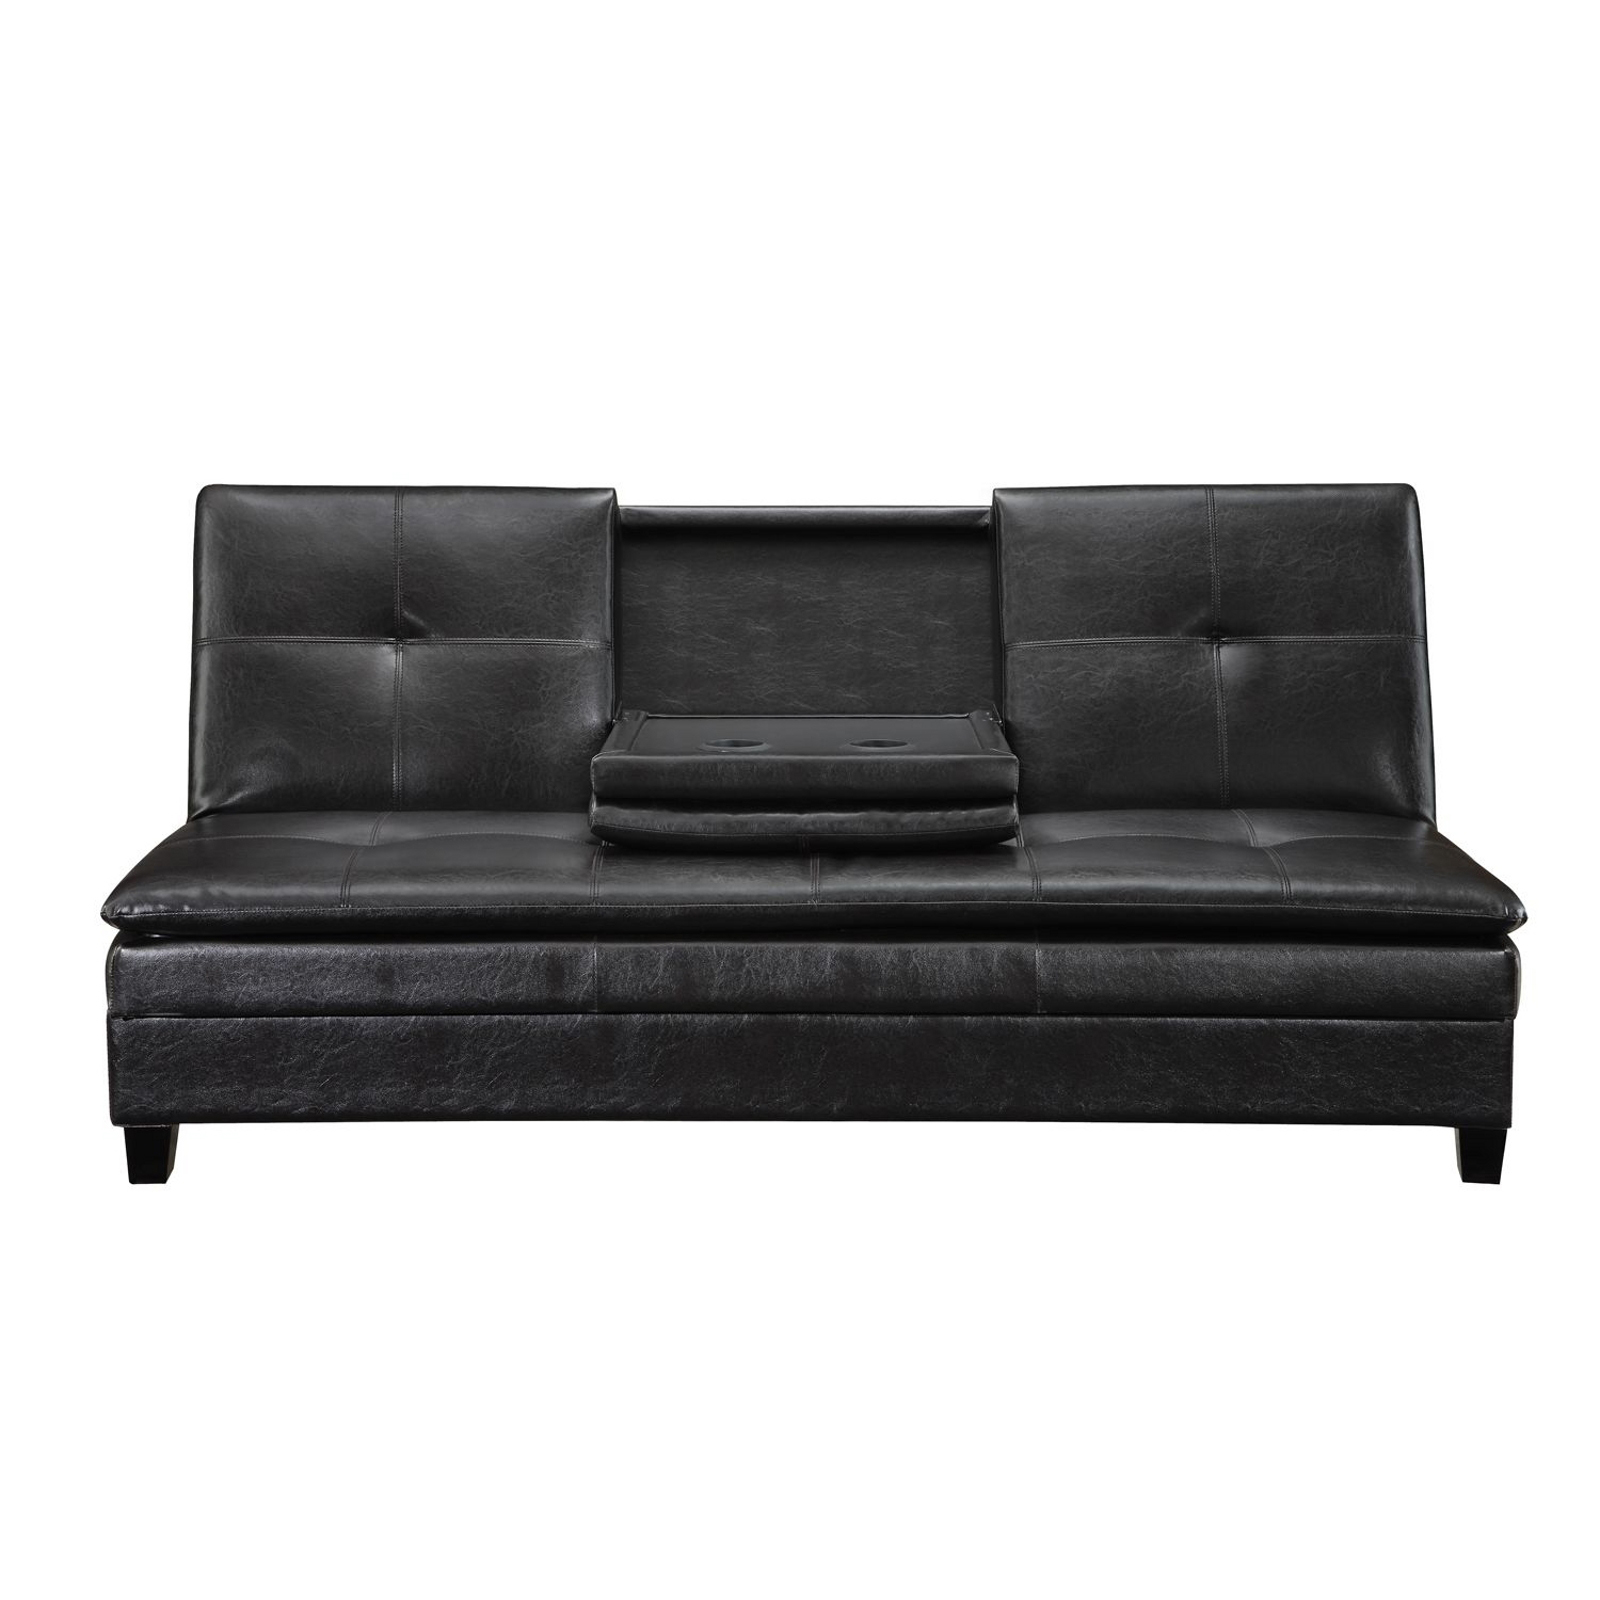 sleeper sofas buffalo ny online sofa sales futon mattresses